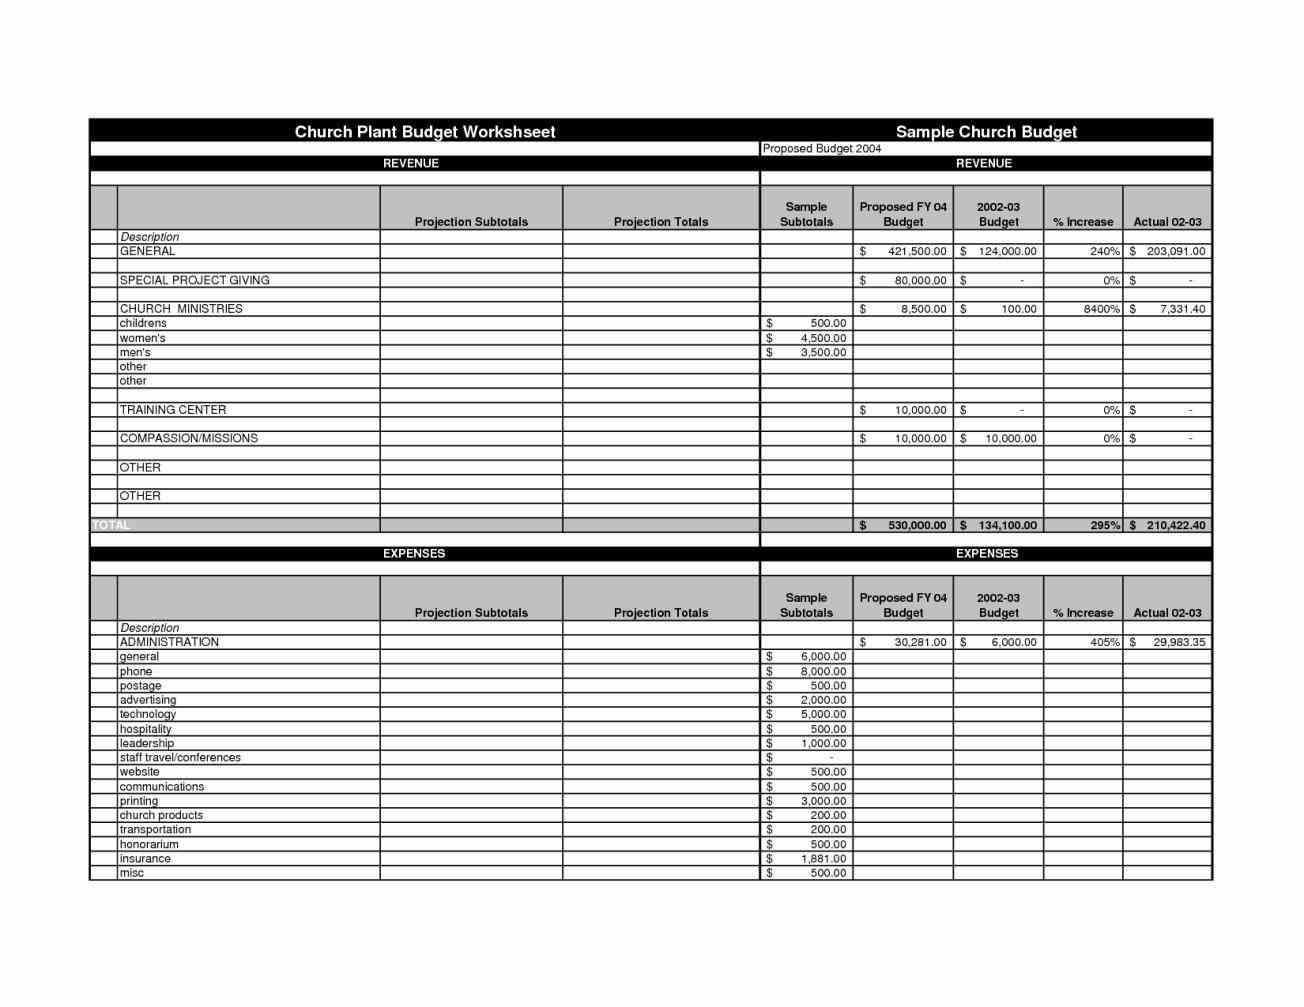 small church budget sample (2)